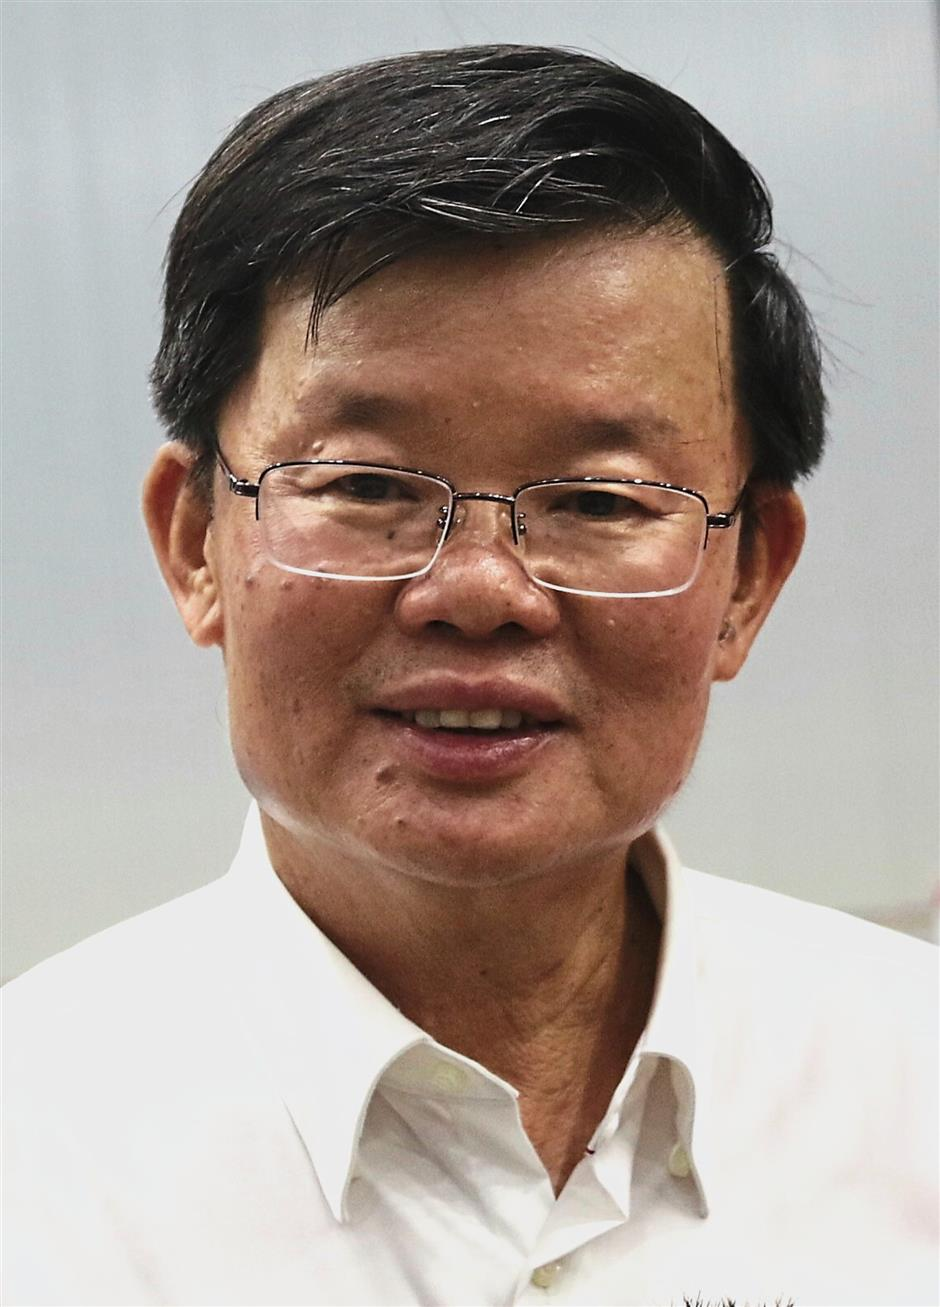 Chow says that by 2050, Penang will become a low-carbon state that emphasises the integrity of the people and the environment.